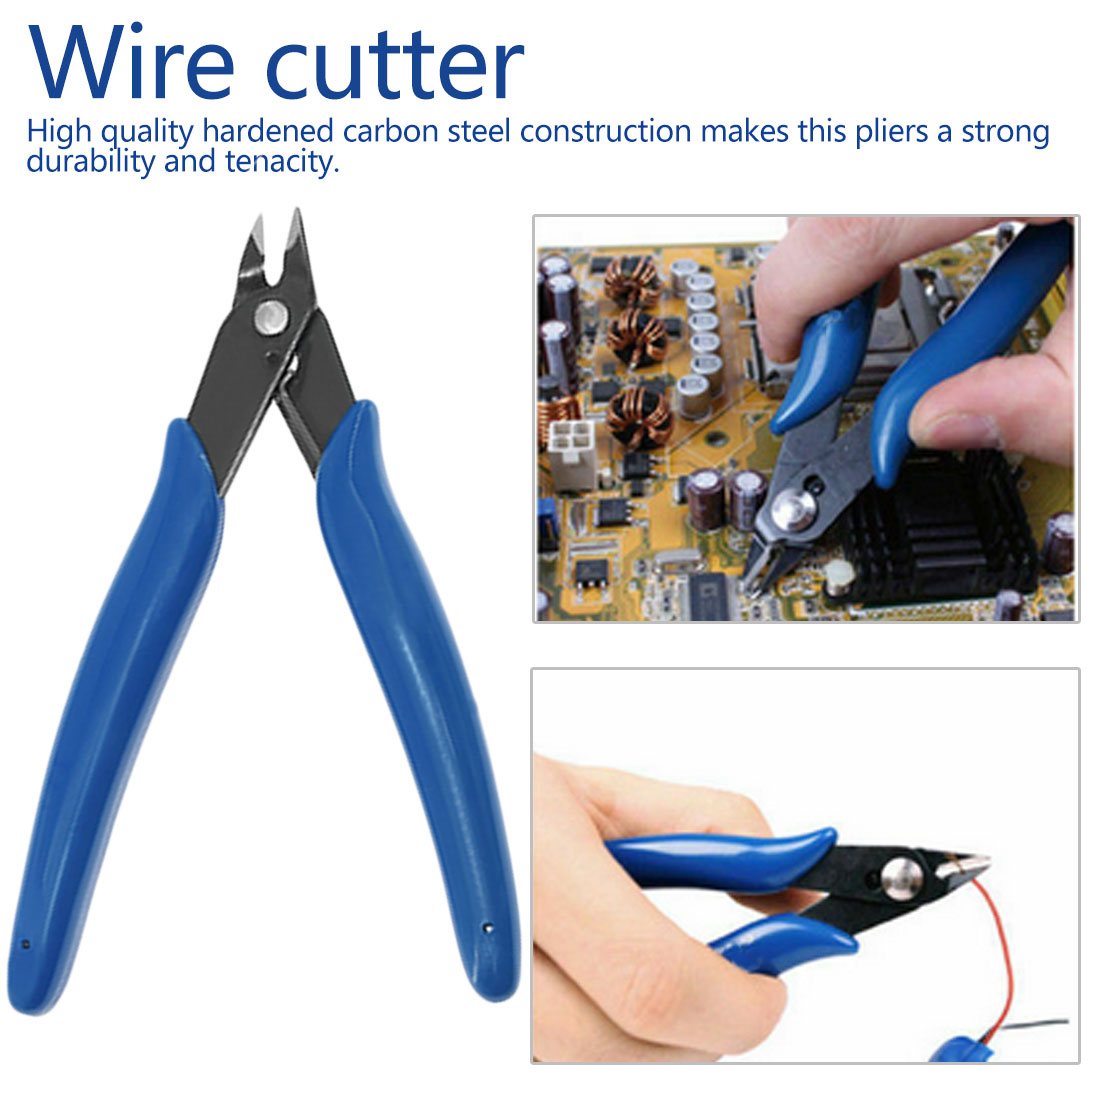 Diagonal Plier 3D Printer Parts Electrical Wire Cable Cutters Cutting Side Snips Flush Pliers Nipper Hand Tools